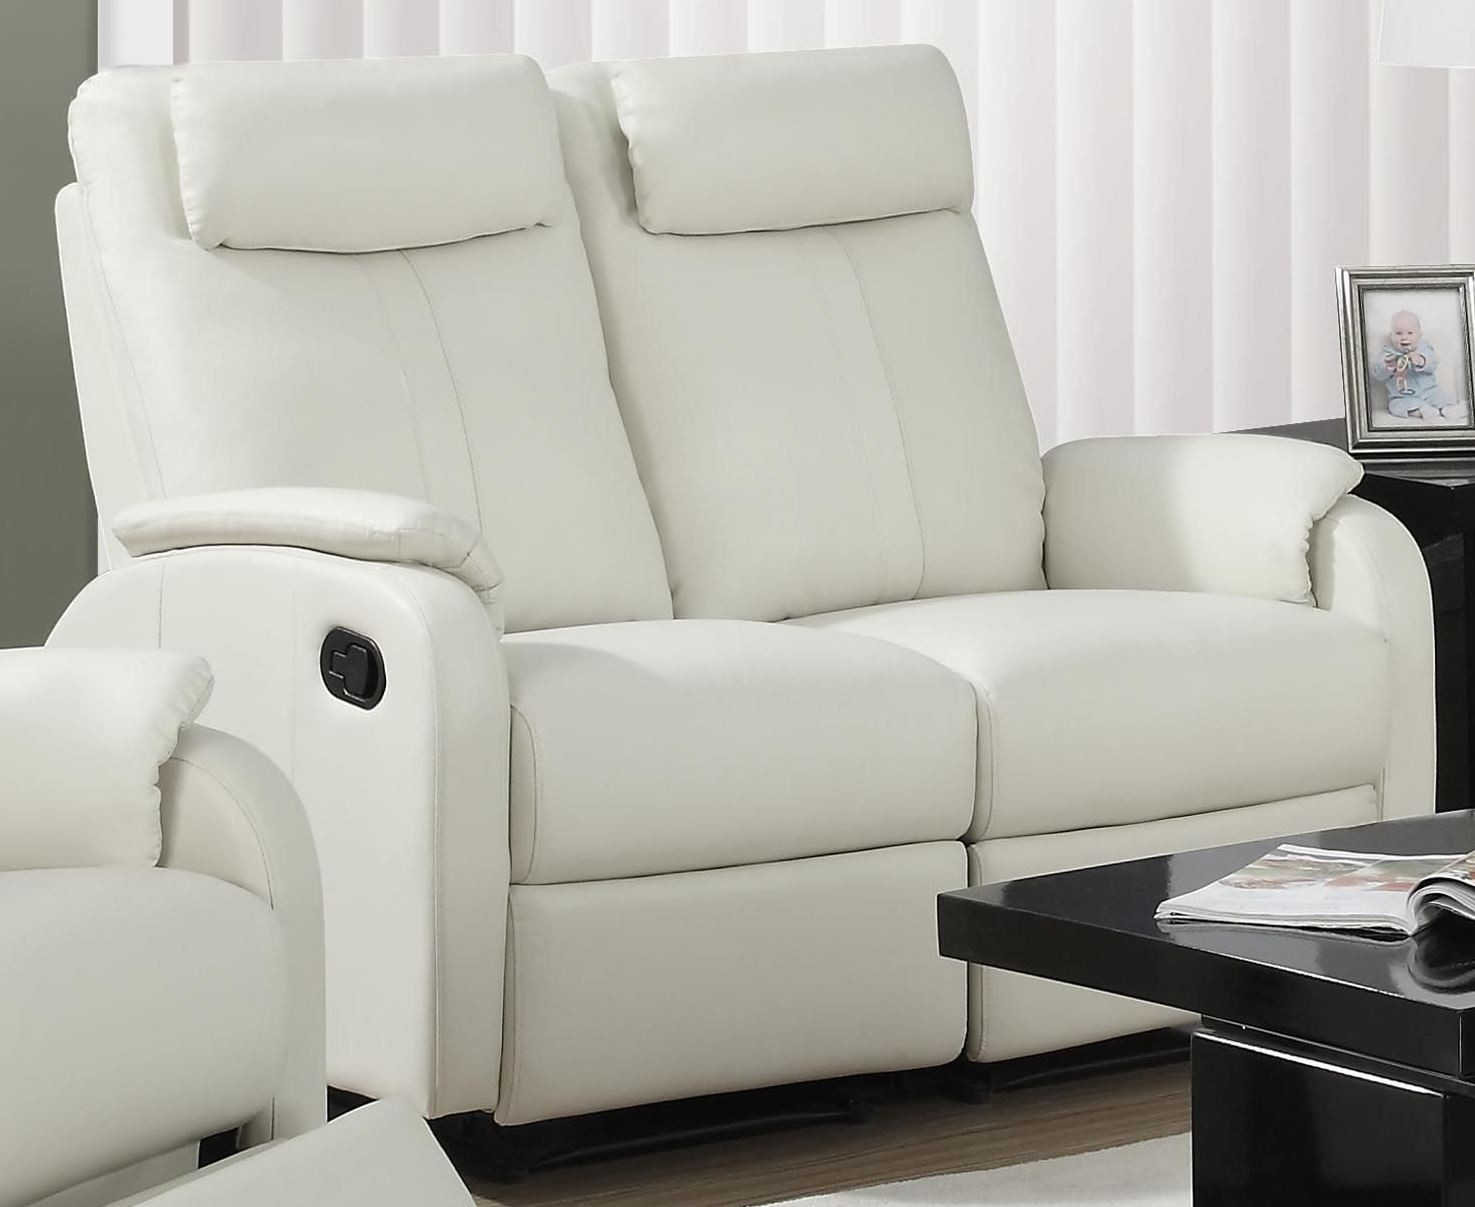 81iv 2 Ivory Bonded Leather Reclining Loveseat 81iv 2 Monarch